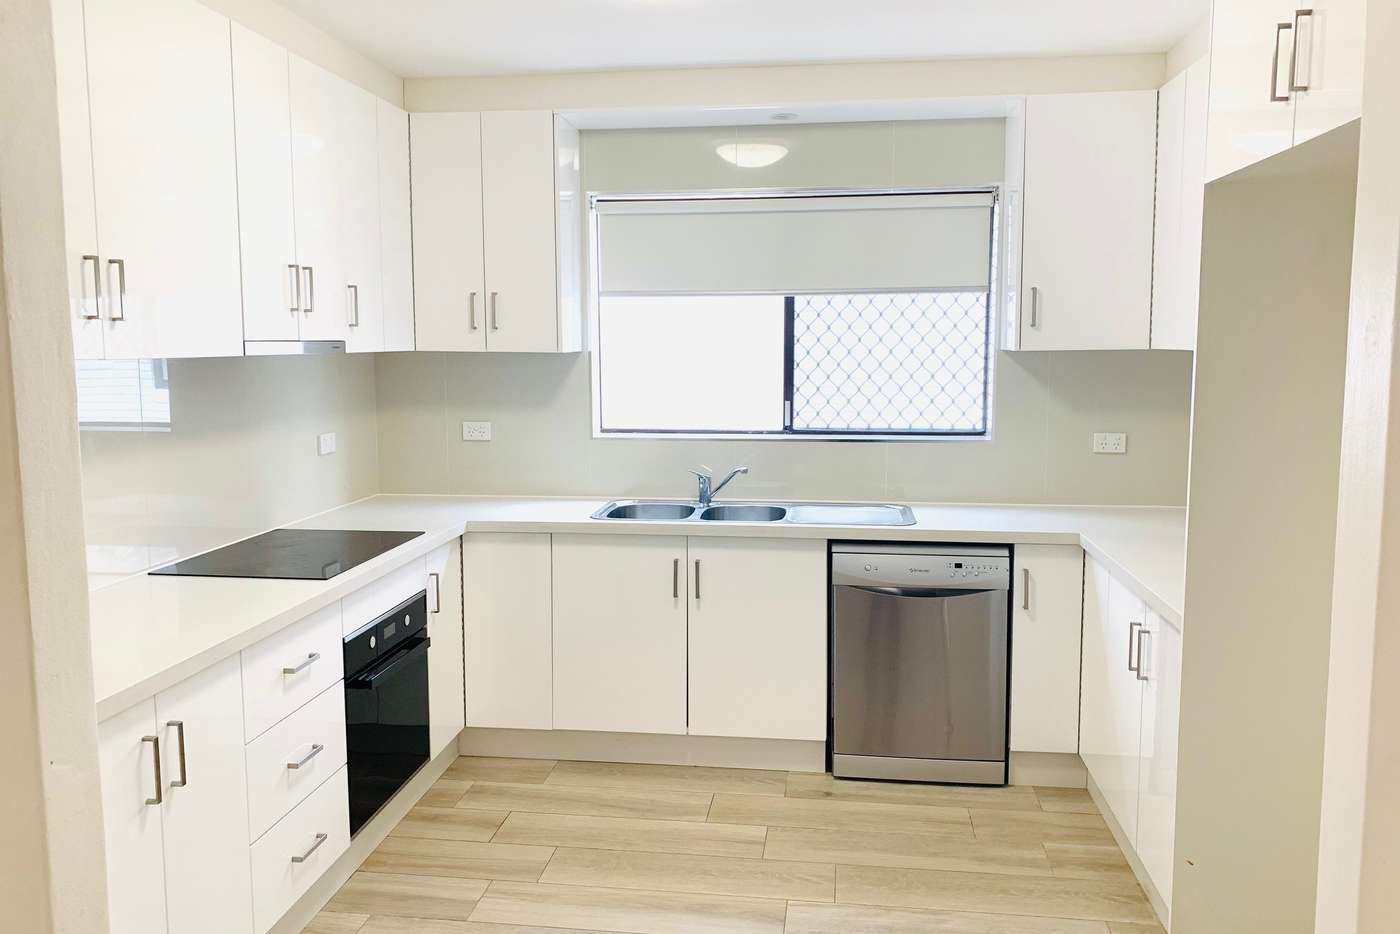 Main view of Homely unit listing, 2/3 Gowrie Street, Ryde NSW 2112